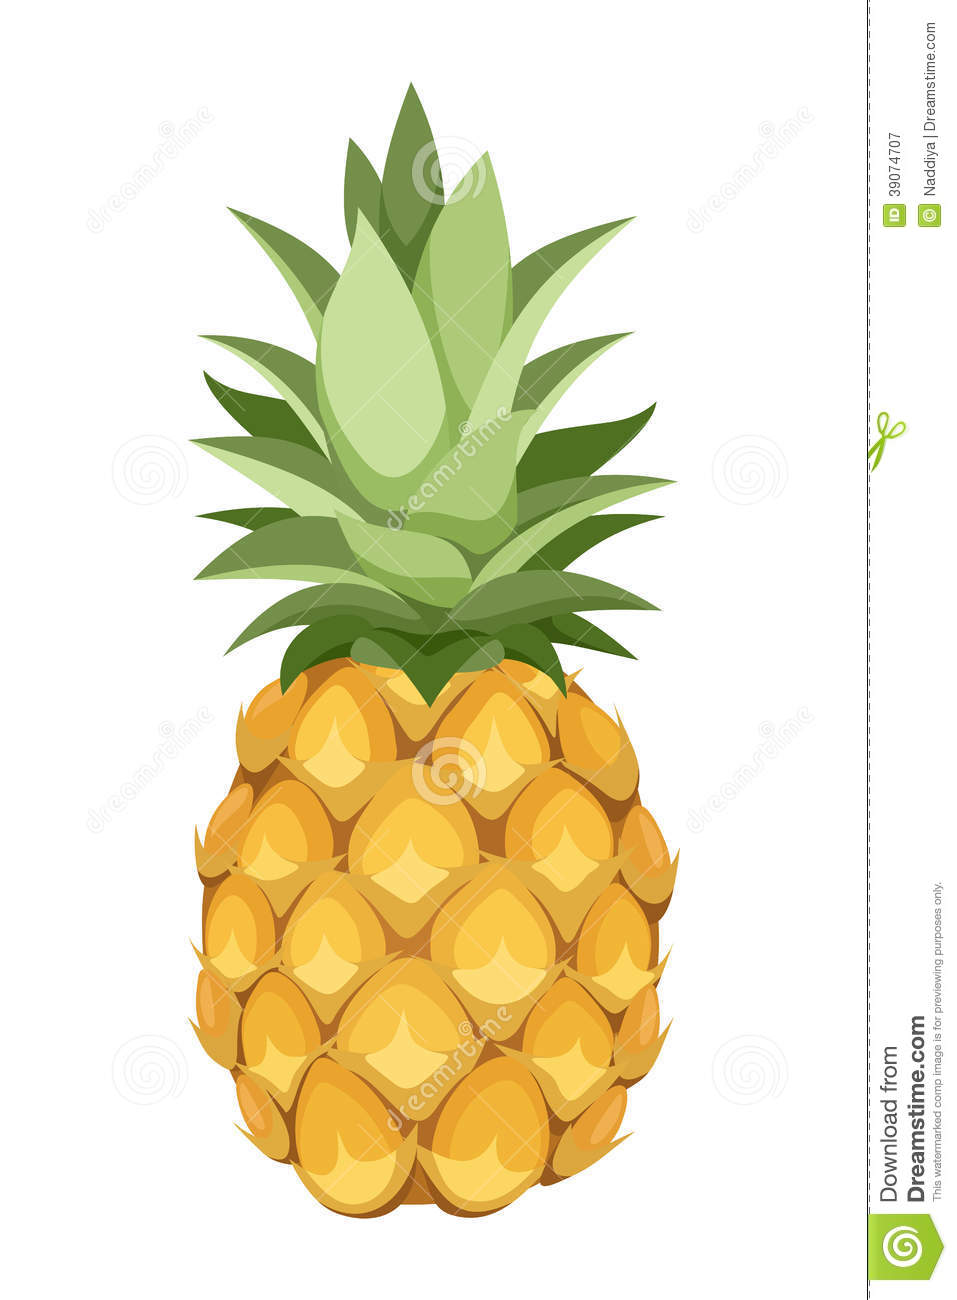 Pineapple. Vector Illustration. Stock Vector - Image: 39074707